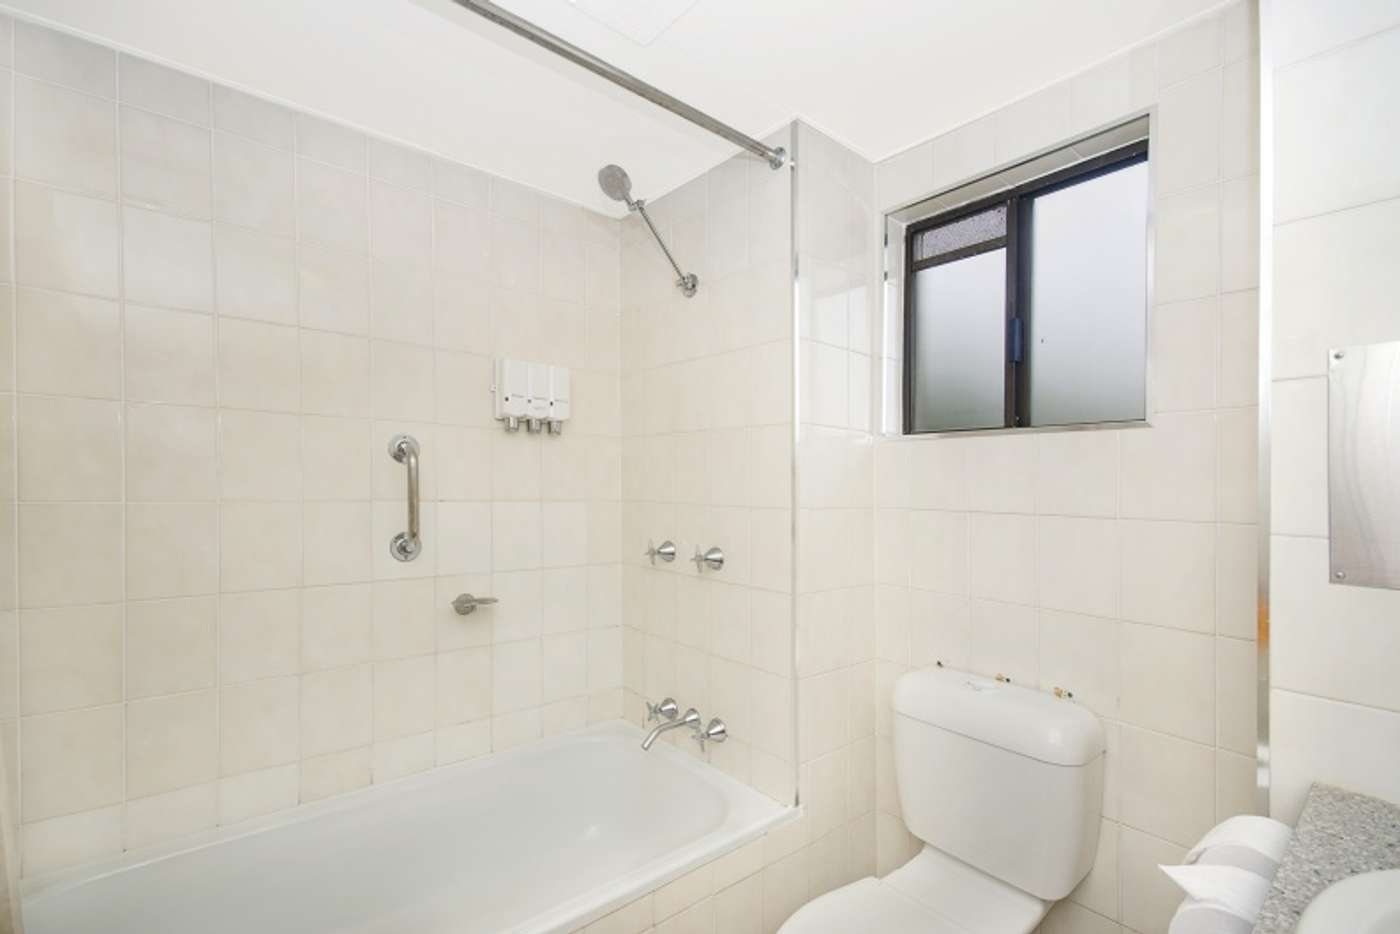 Sixth view of Homely unit listing, 21/63-64 The Strand, North Ward QLD 4810